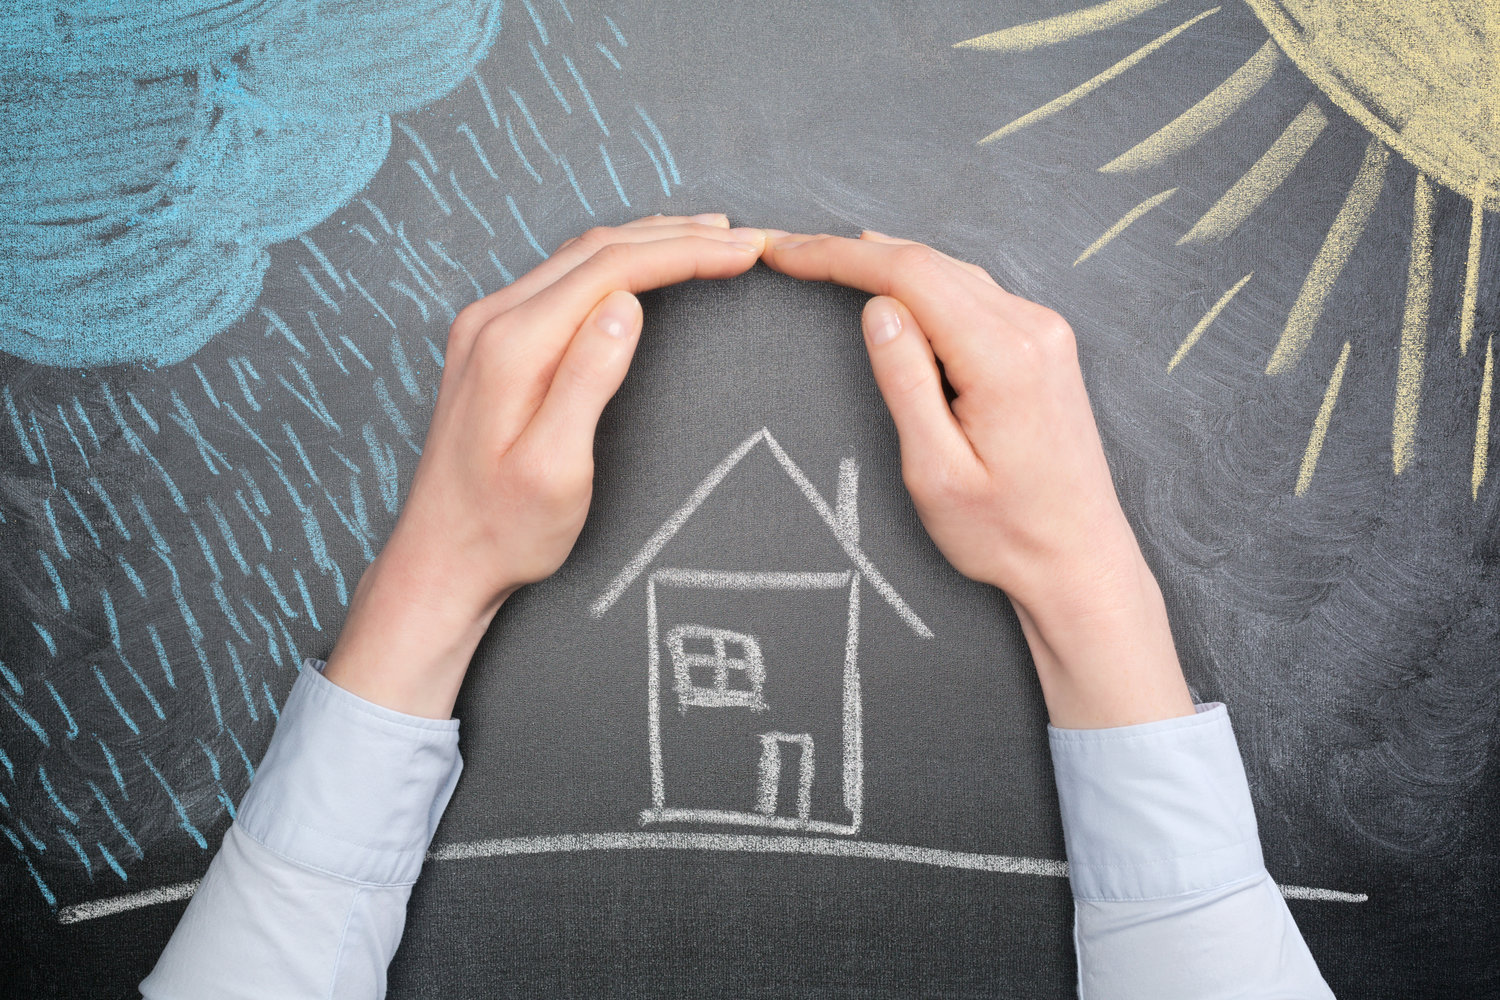 What Should Homeowners Look For When Choosing An Insurance Agency?